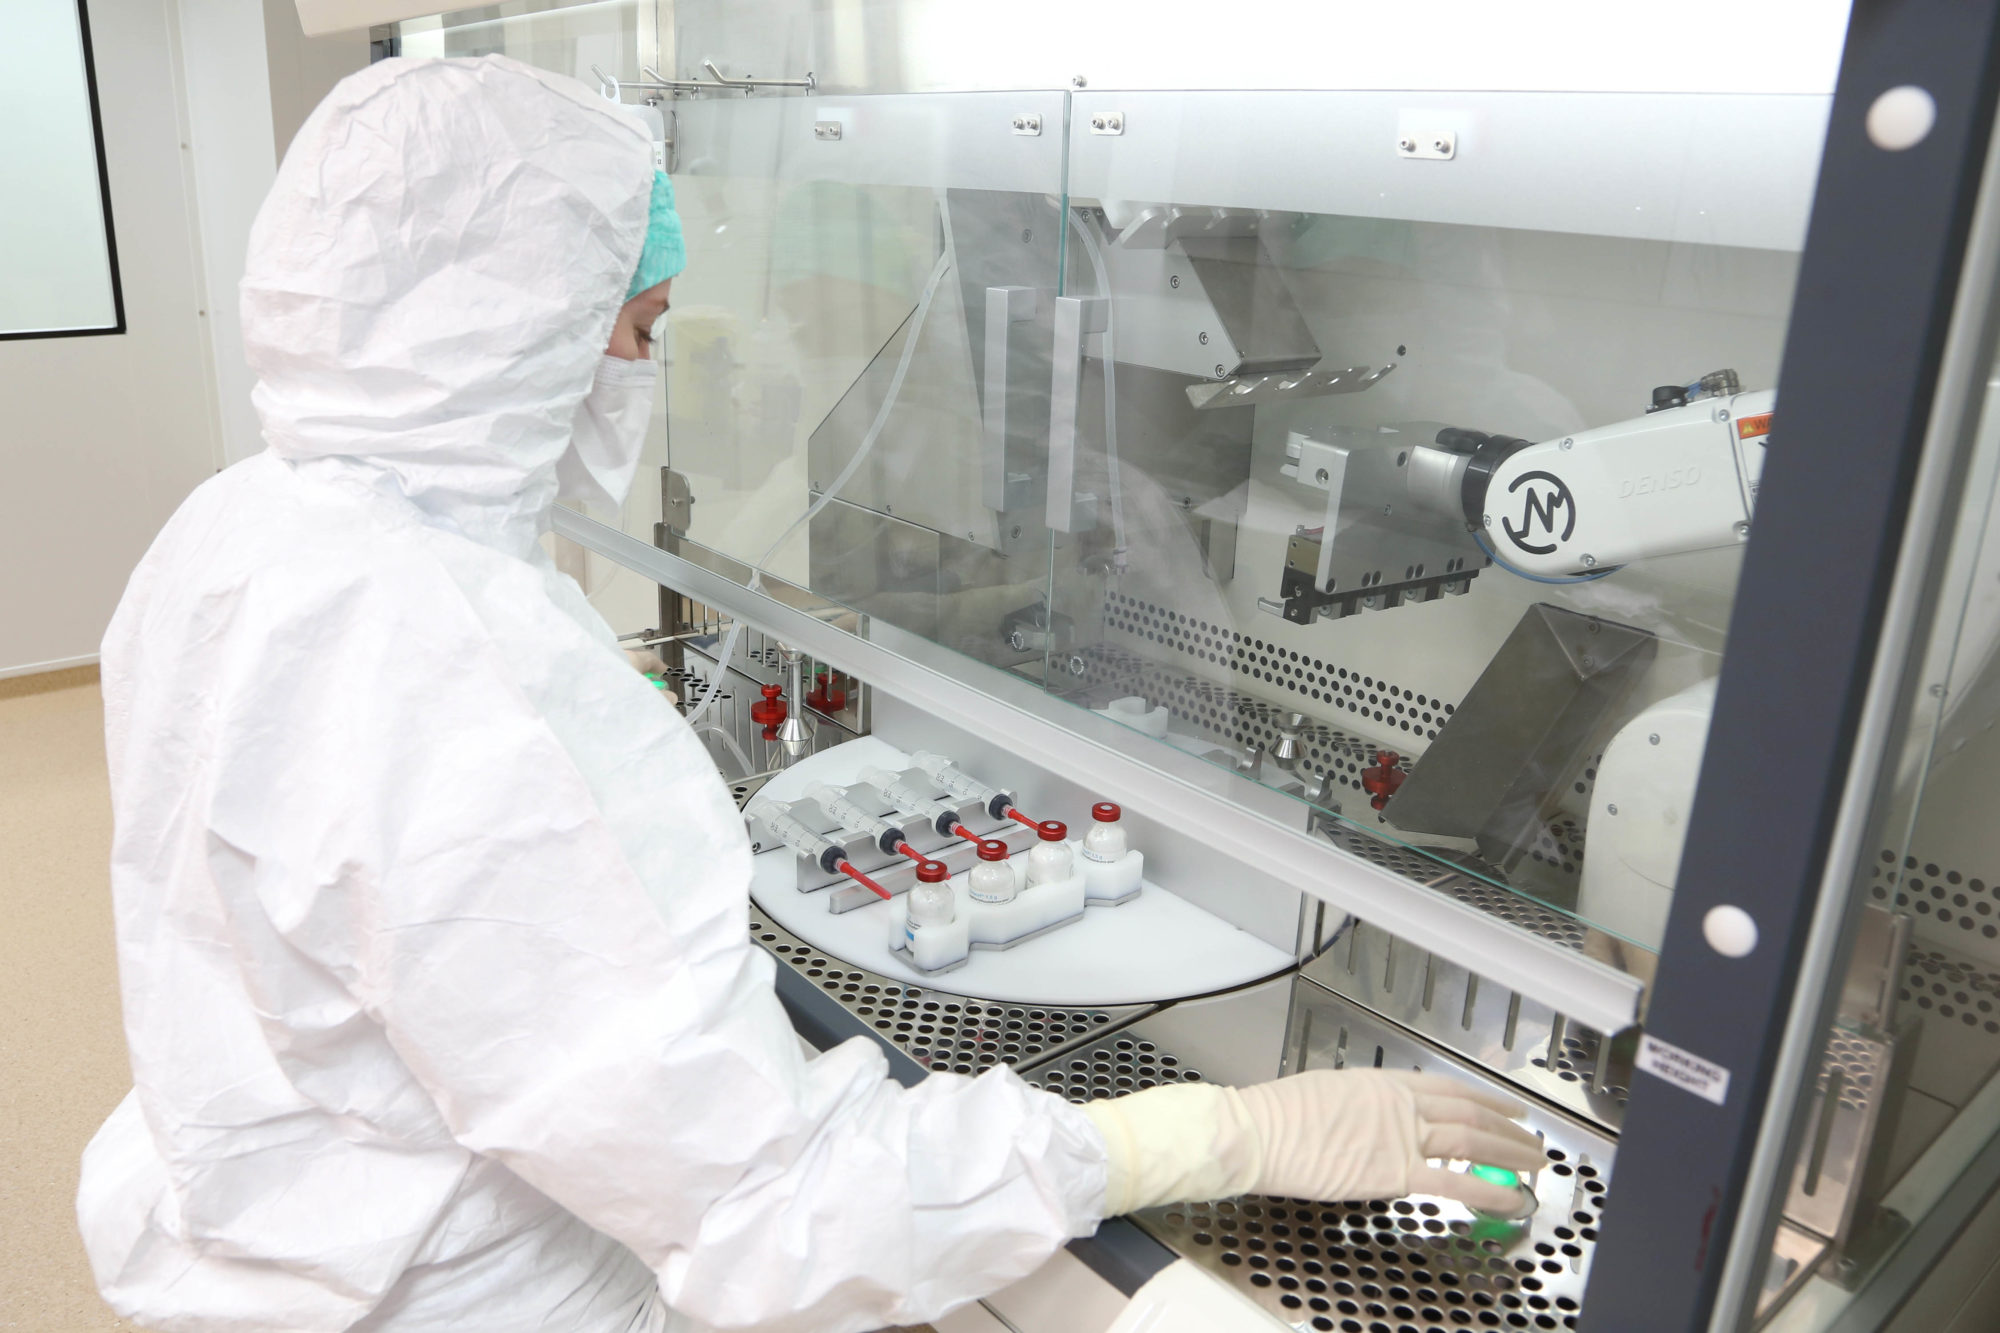 Robot Begins Mass Compounding of Antibiotic Doses